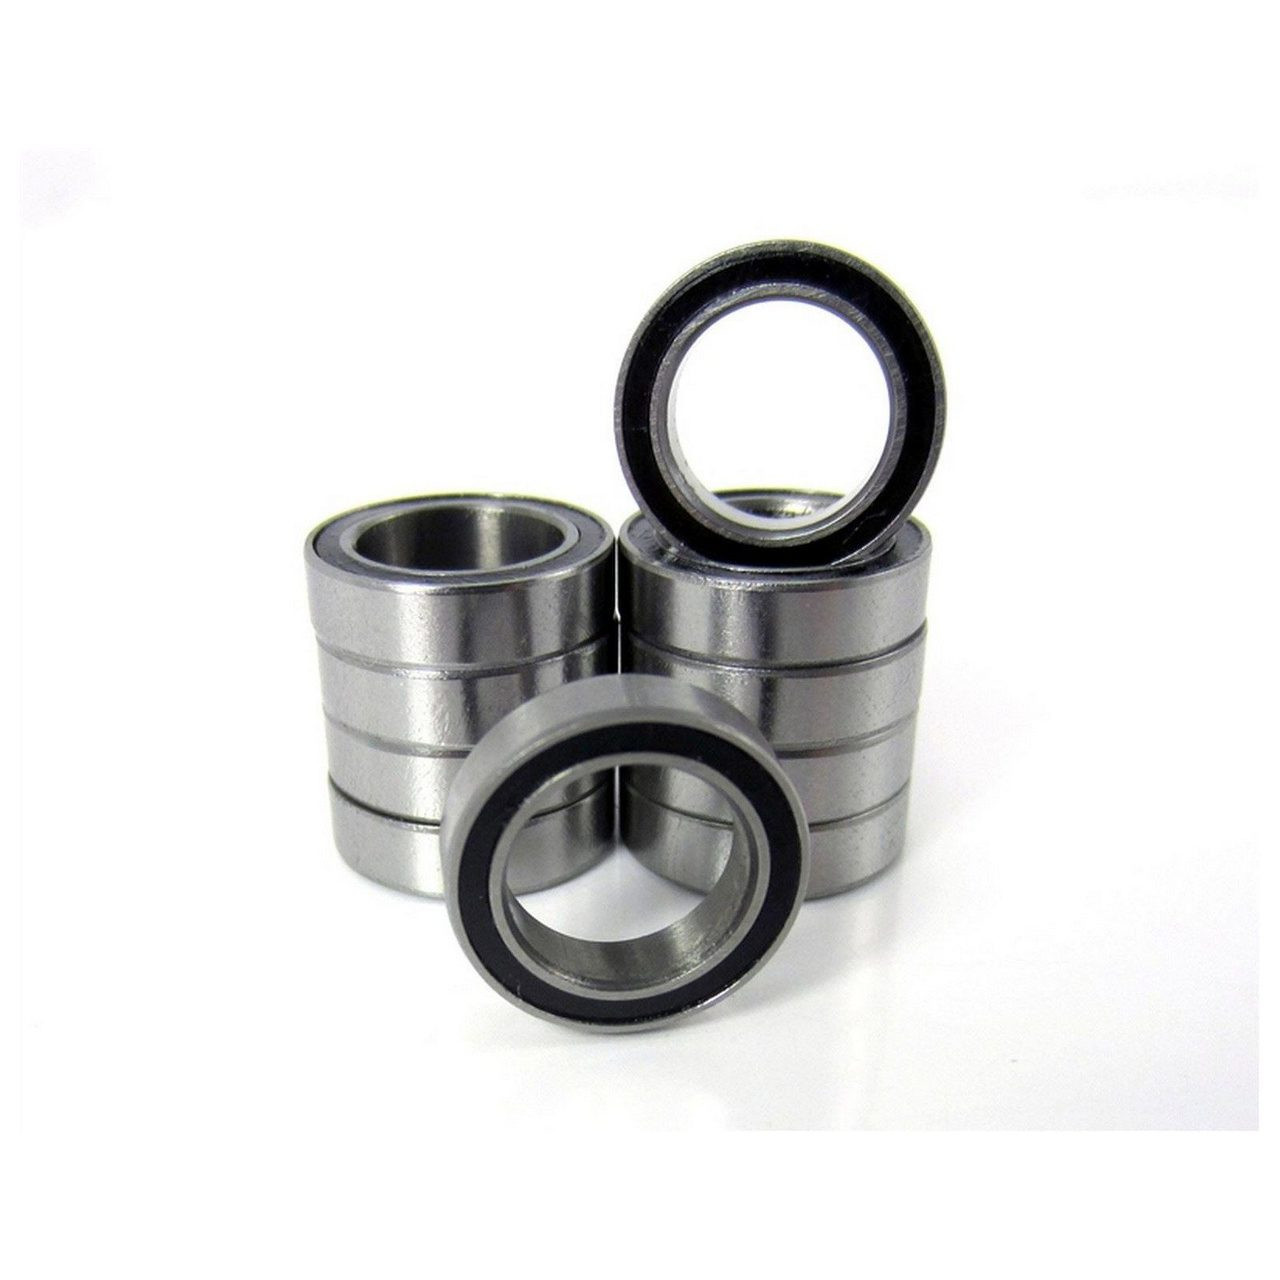 TRB RC 10x15x4mm Precision Ball Bearings ABEC 3 Rubber Sealed (10)